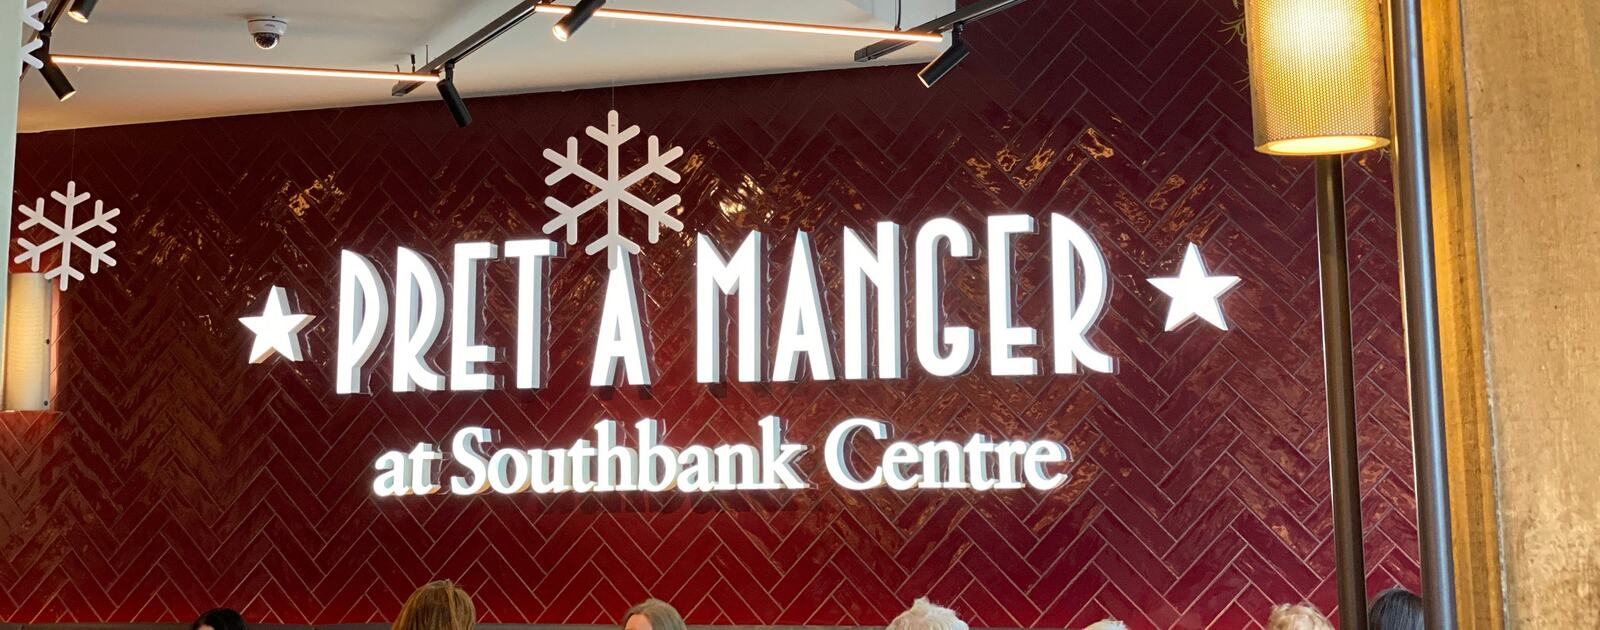 Interior view of Pret A Manger at Southbank Centre